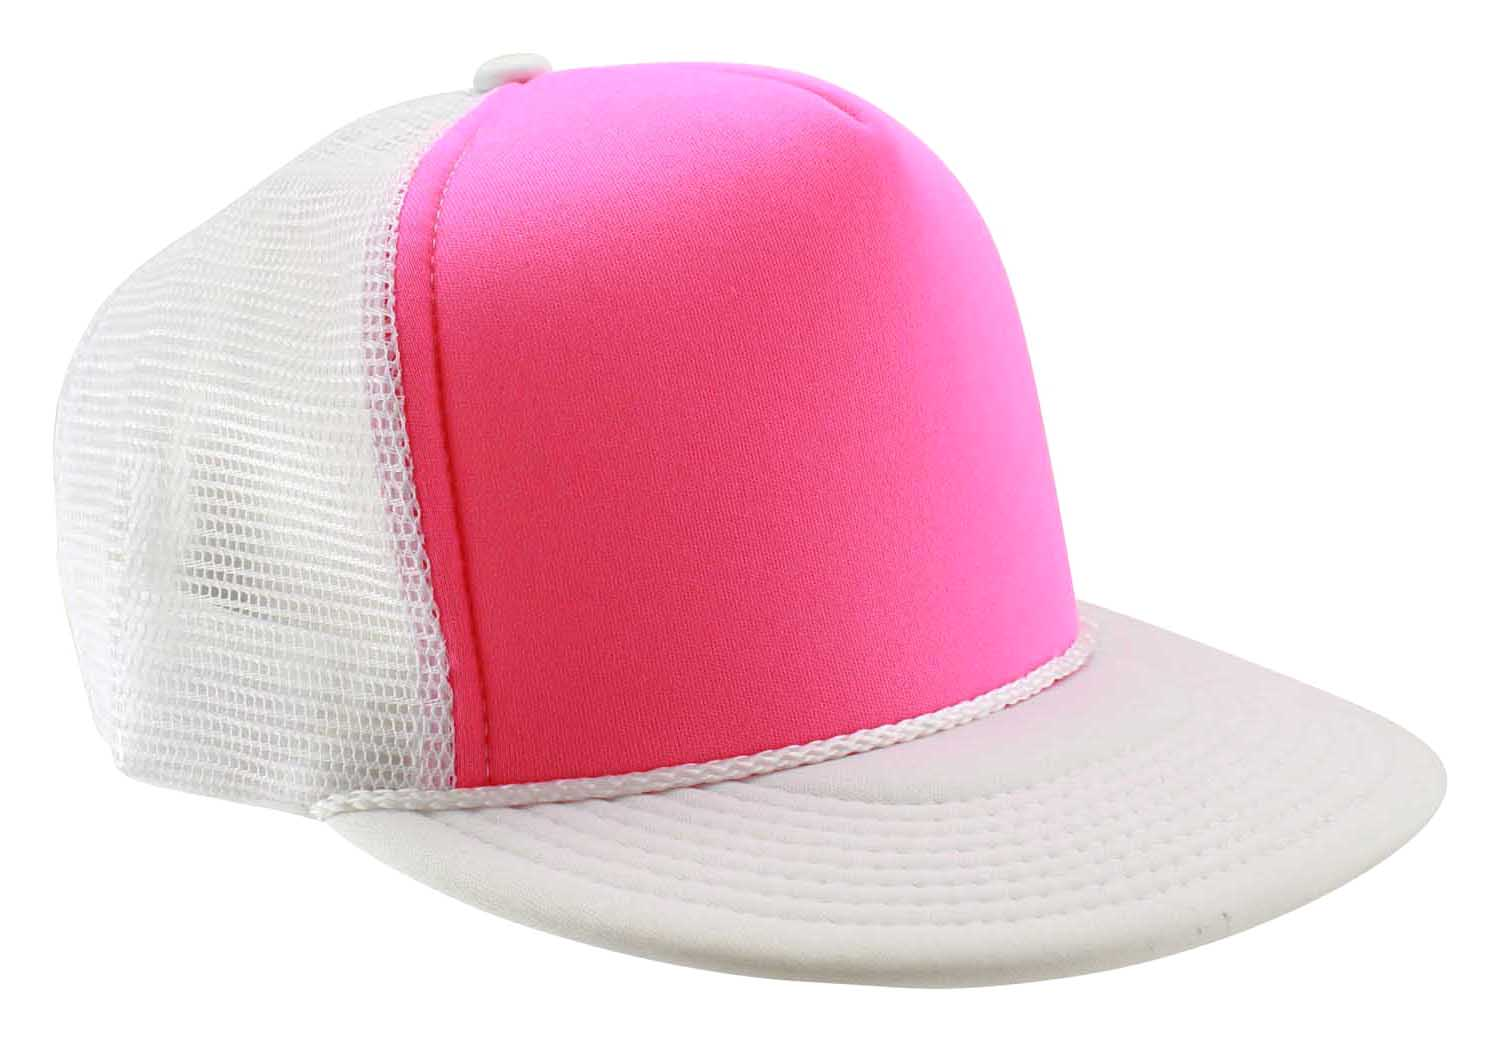 6c10d125e9b Enimay Neon Colored Black Light Trucker Style Foam Hats Pool Party Rave  Summer Neon White Green One Size - Walmart.com